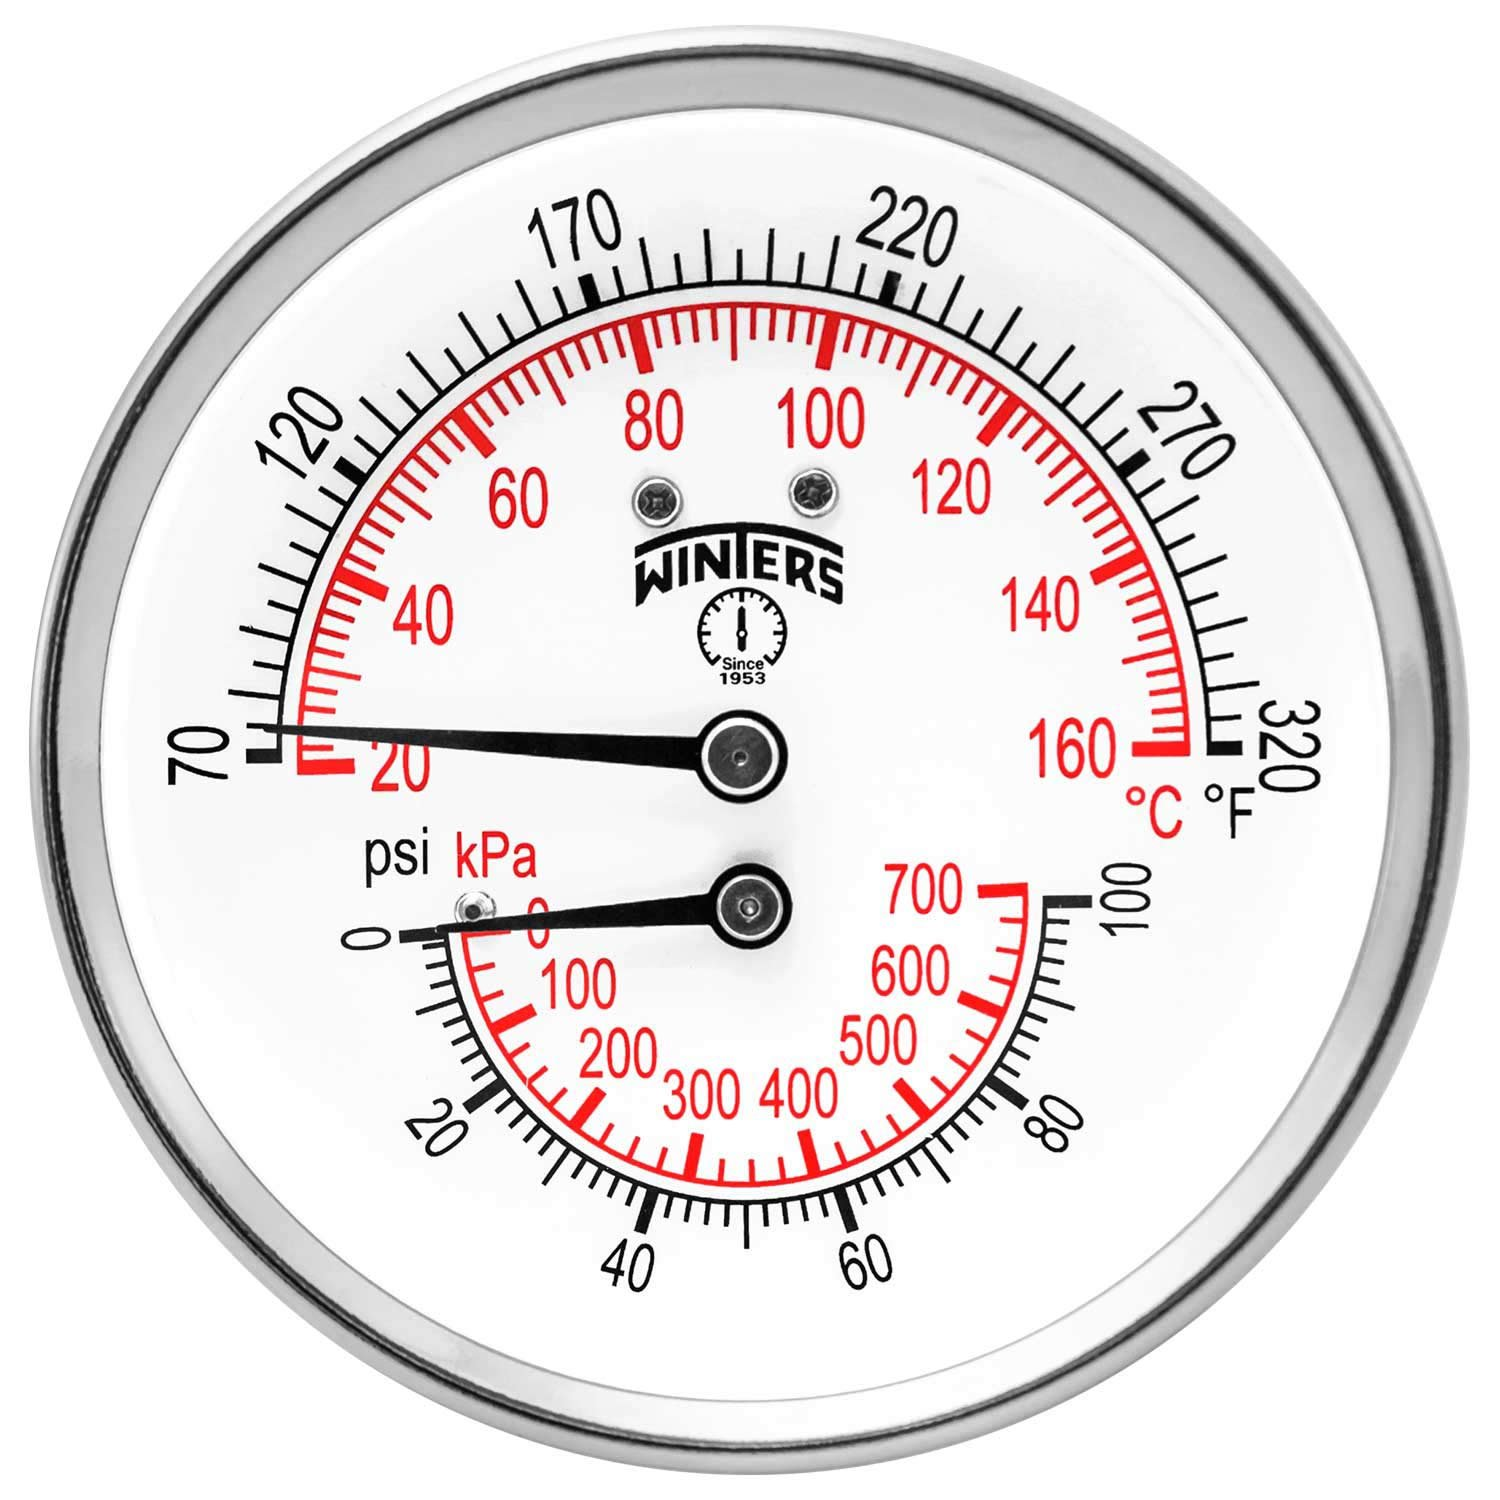 Winters TTD Series Steel Dual Scale Tridicator Thermometer with 2'' Stem, 0-100psi/kpa, 3'' Dial Display, ±3-2-3% Accuracy, 1/2'' NPT Back Mount, 70-320 Deg F/C